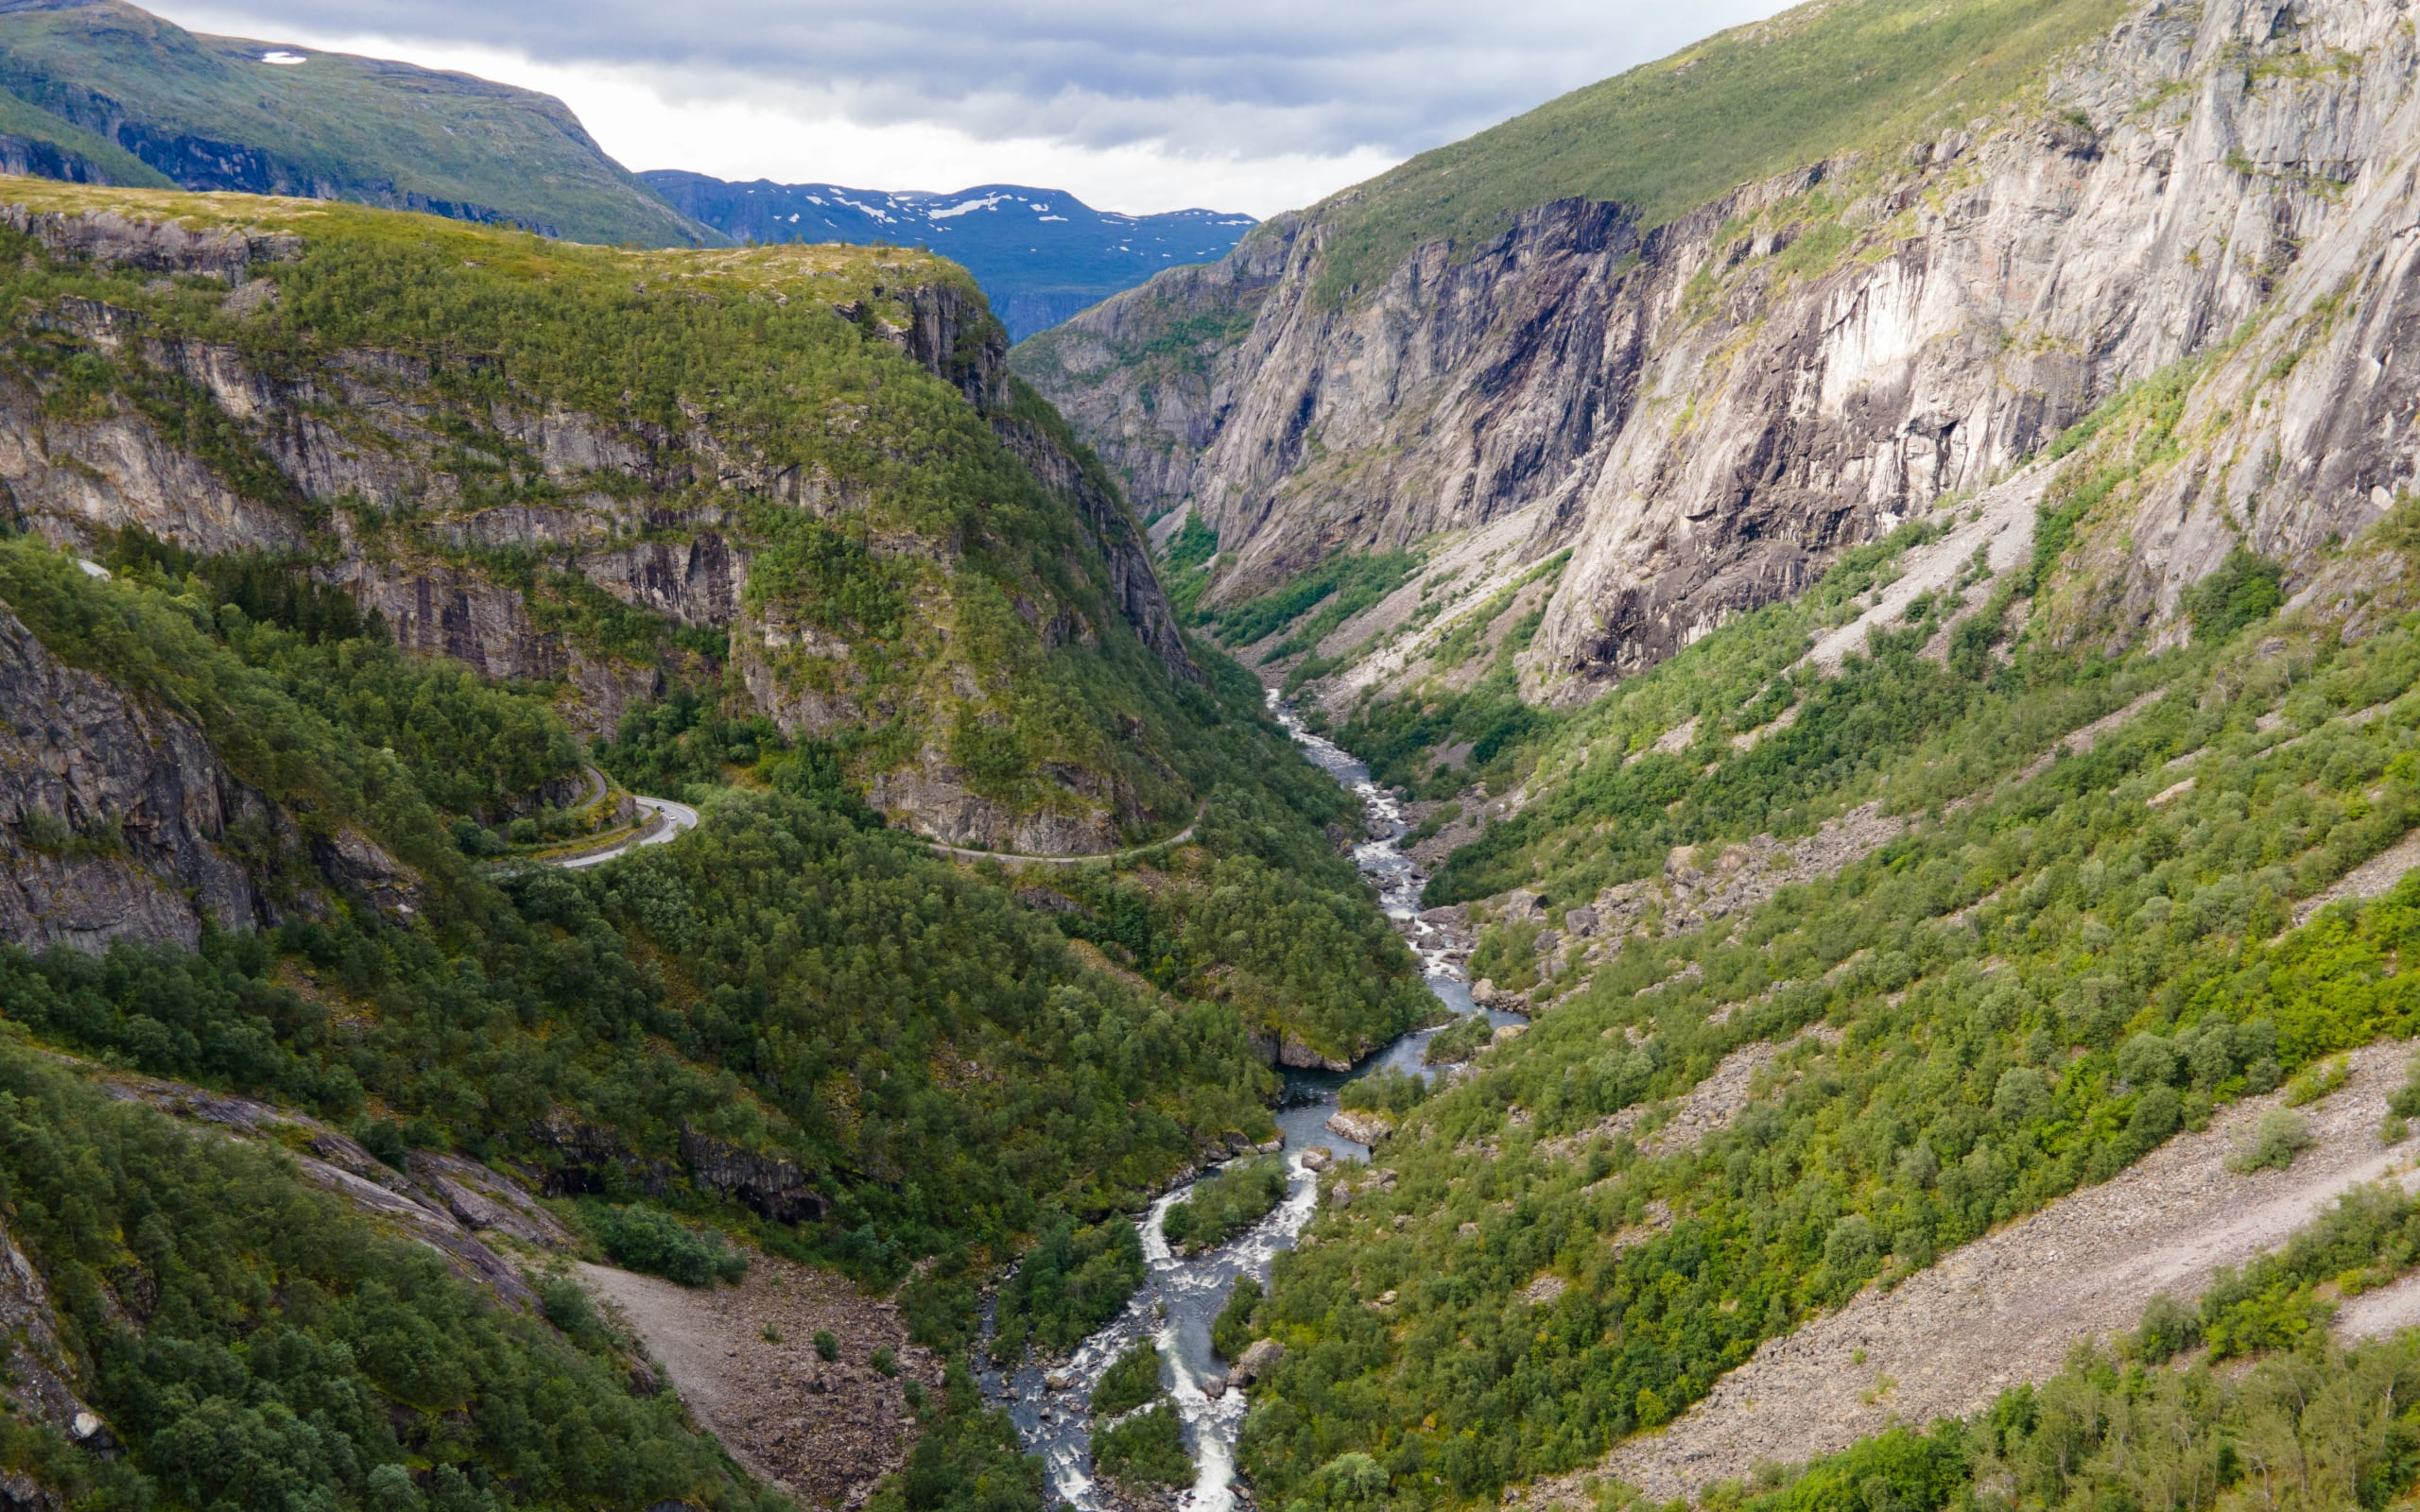 Panorama view of Måbødalen valley